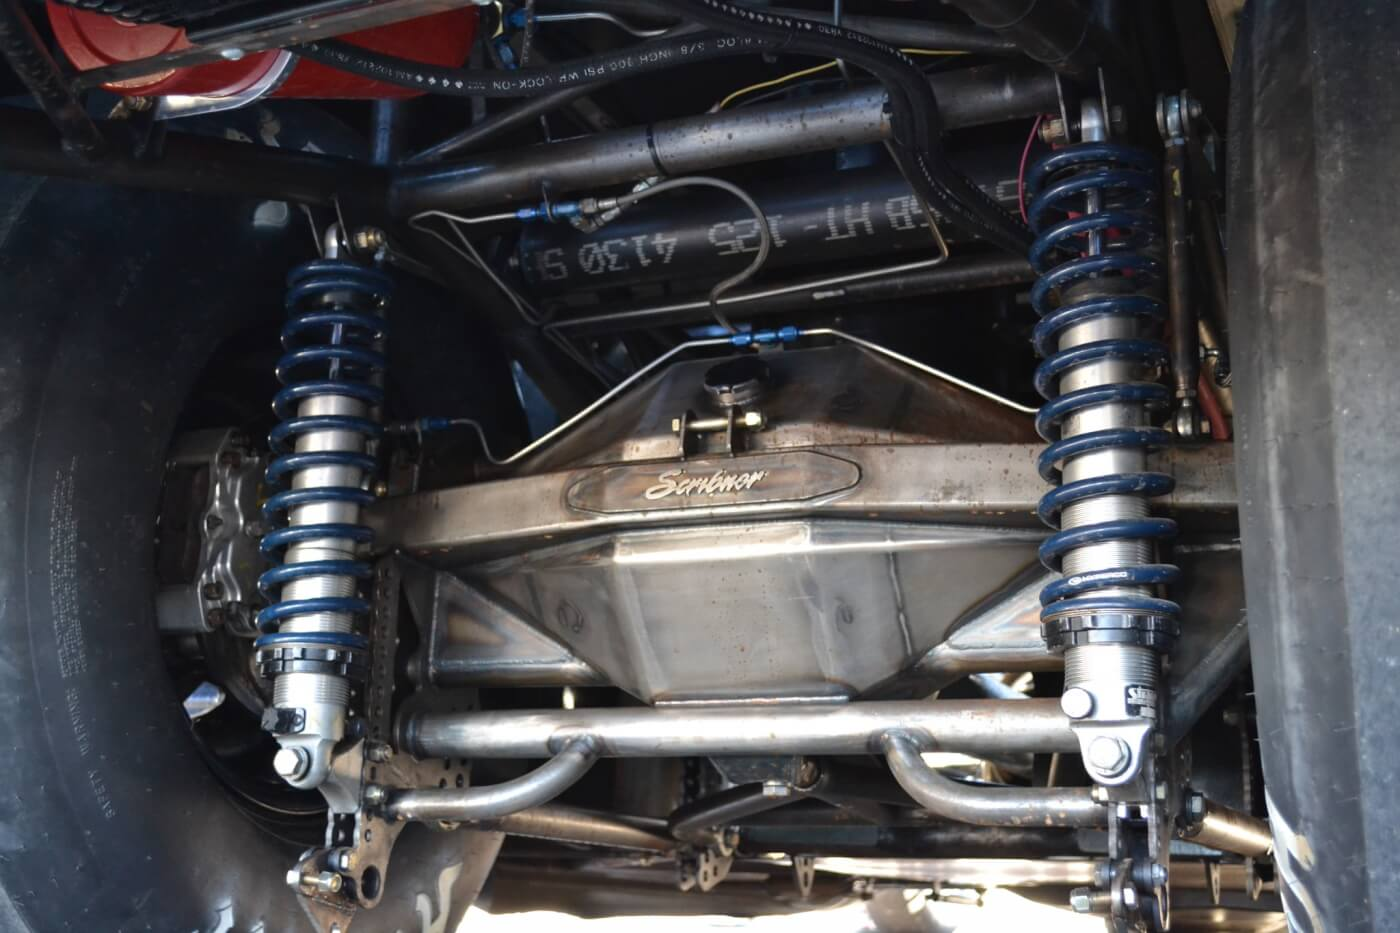 Traditional diesel rear ends are strong but heavy. This fabricated, back-braced housing built by Scribner is both strong and light. The rear end also has a diesel-specific 2.91 gears to keep the big engine in its power band.